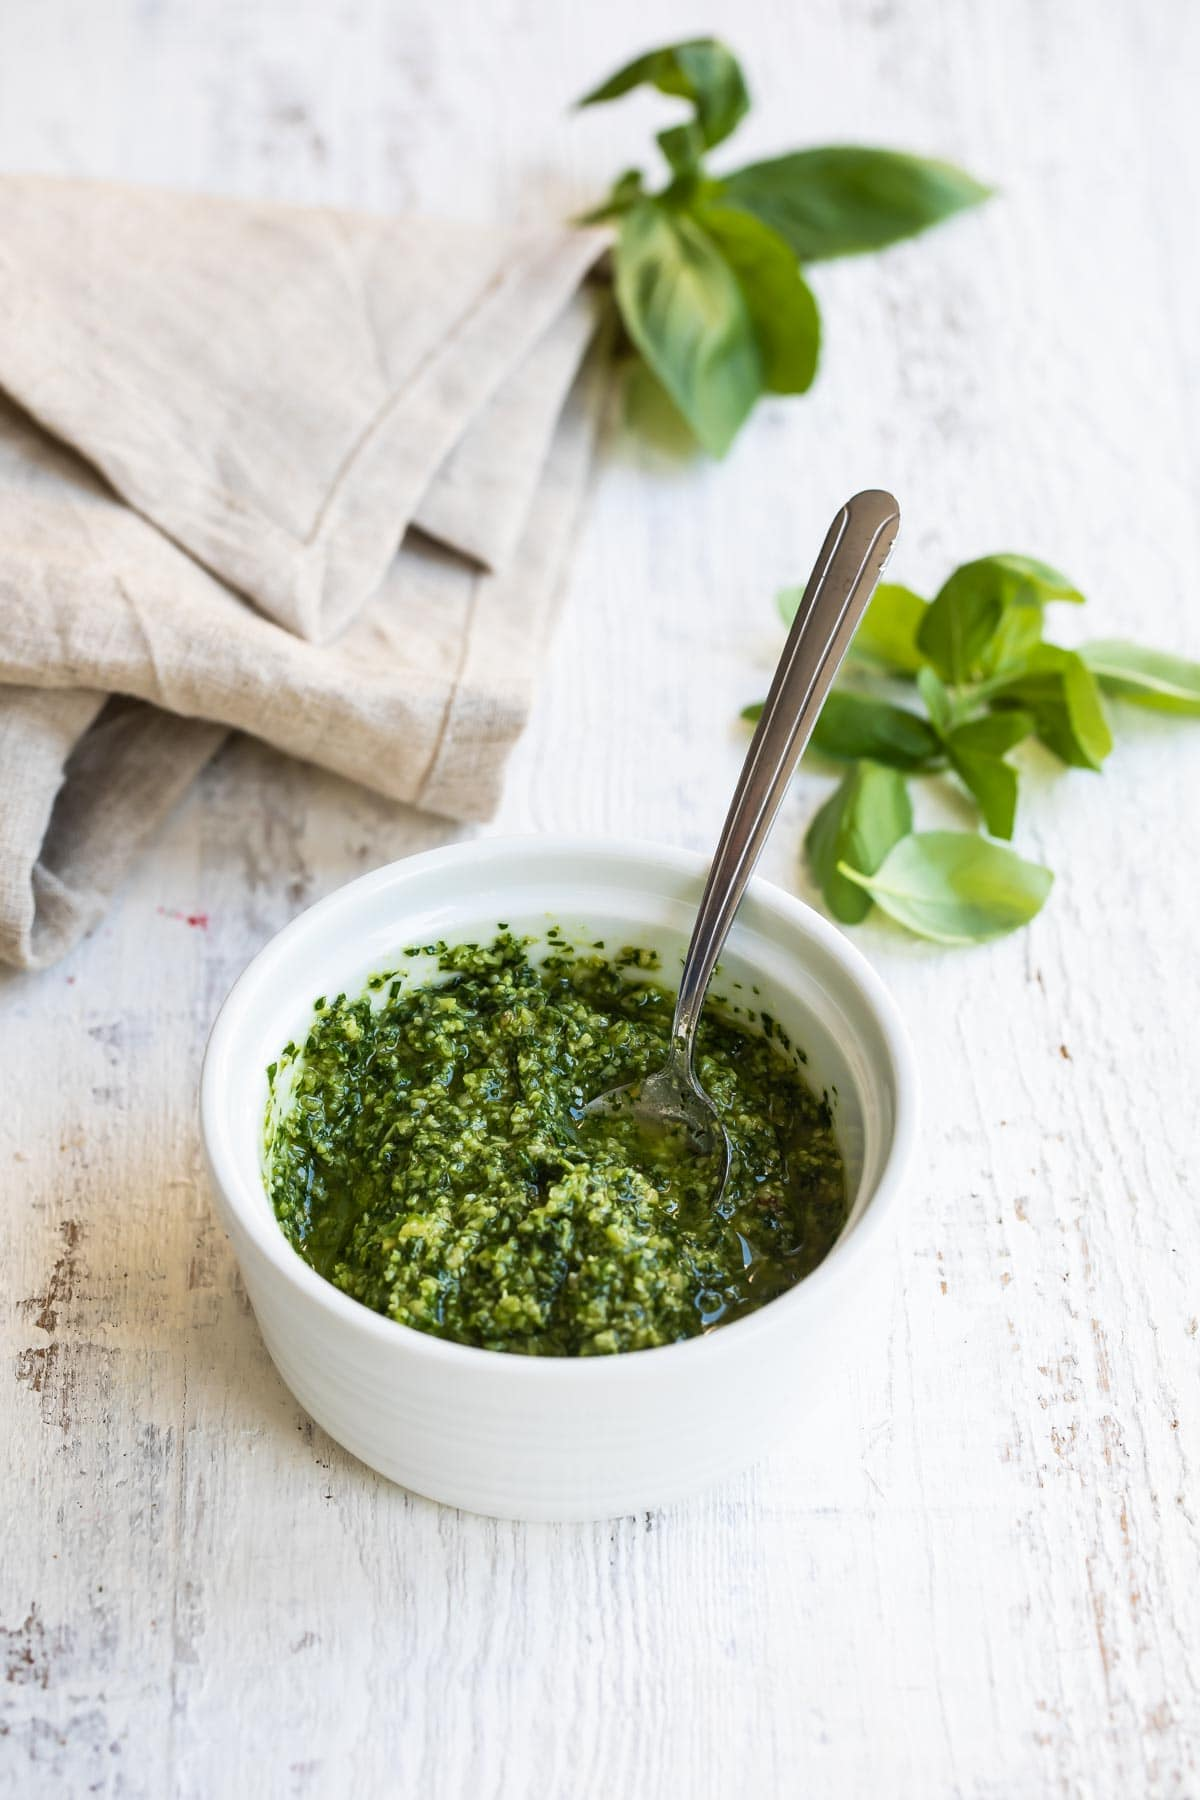 A bowl of pesto with a spoon in it.